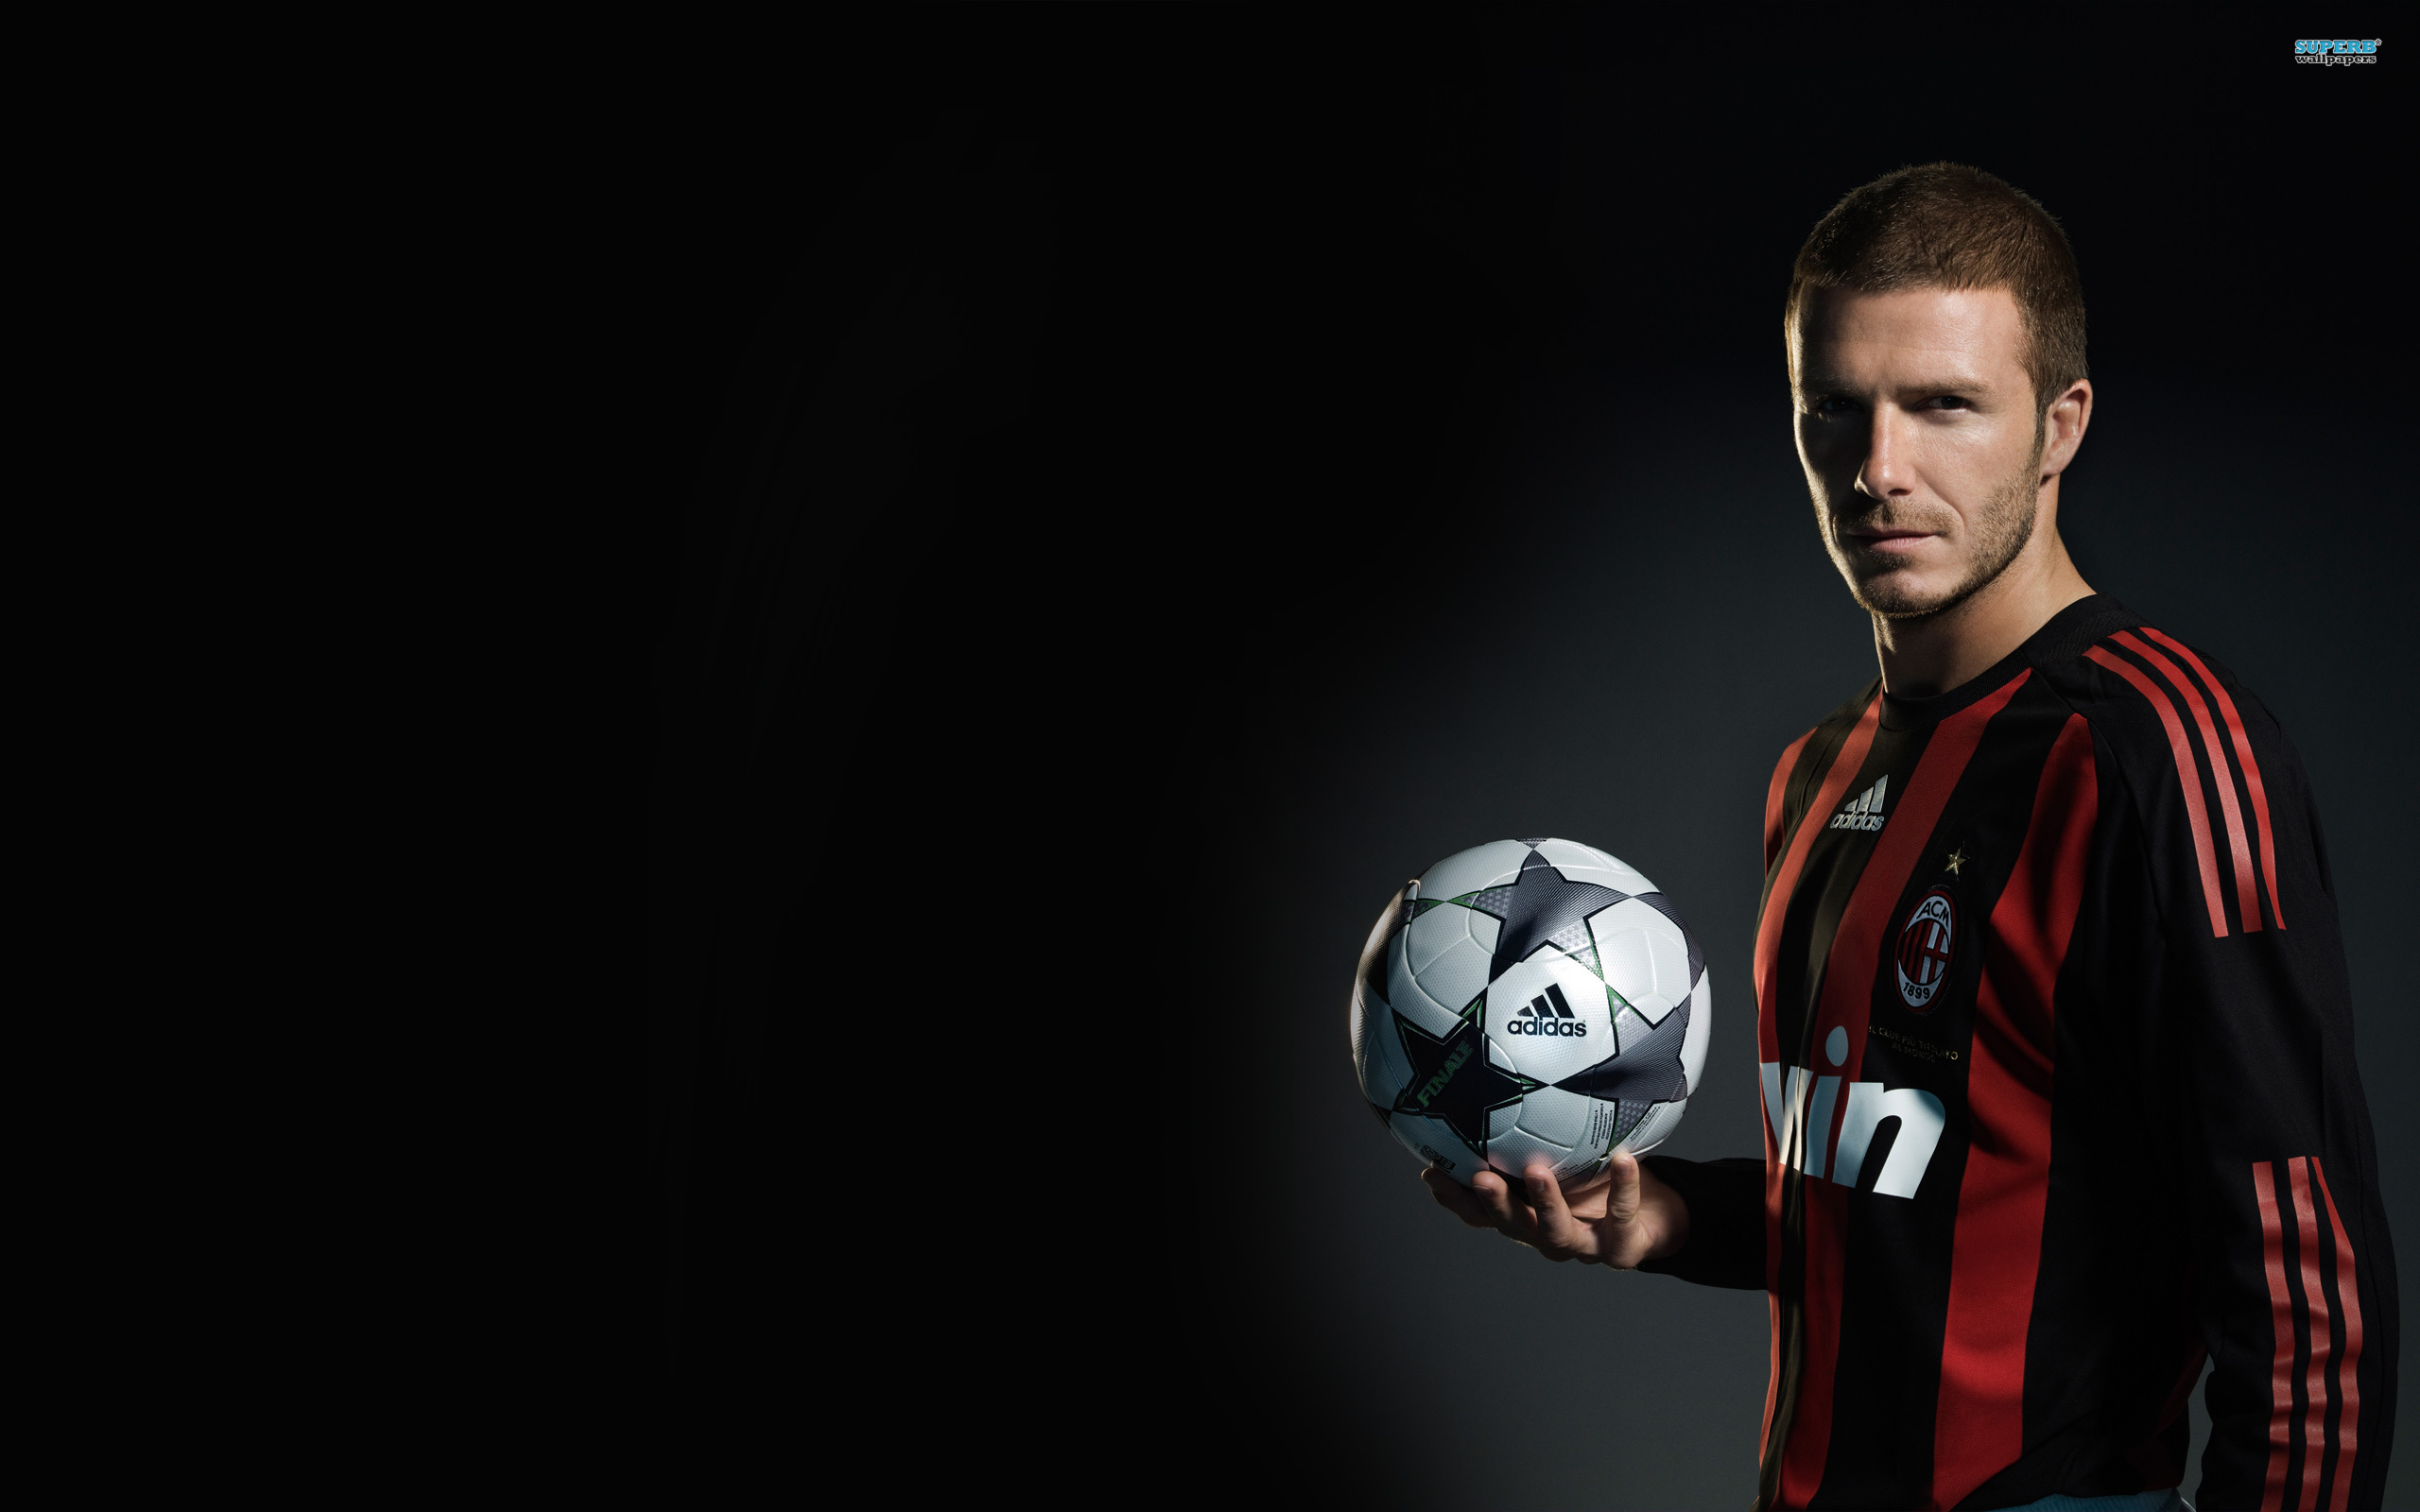 David Beckham Wallpaper Hd 2